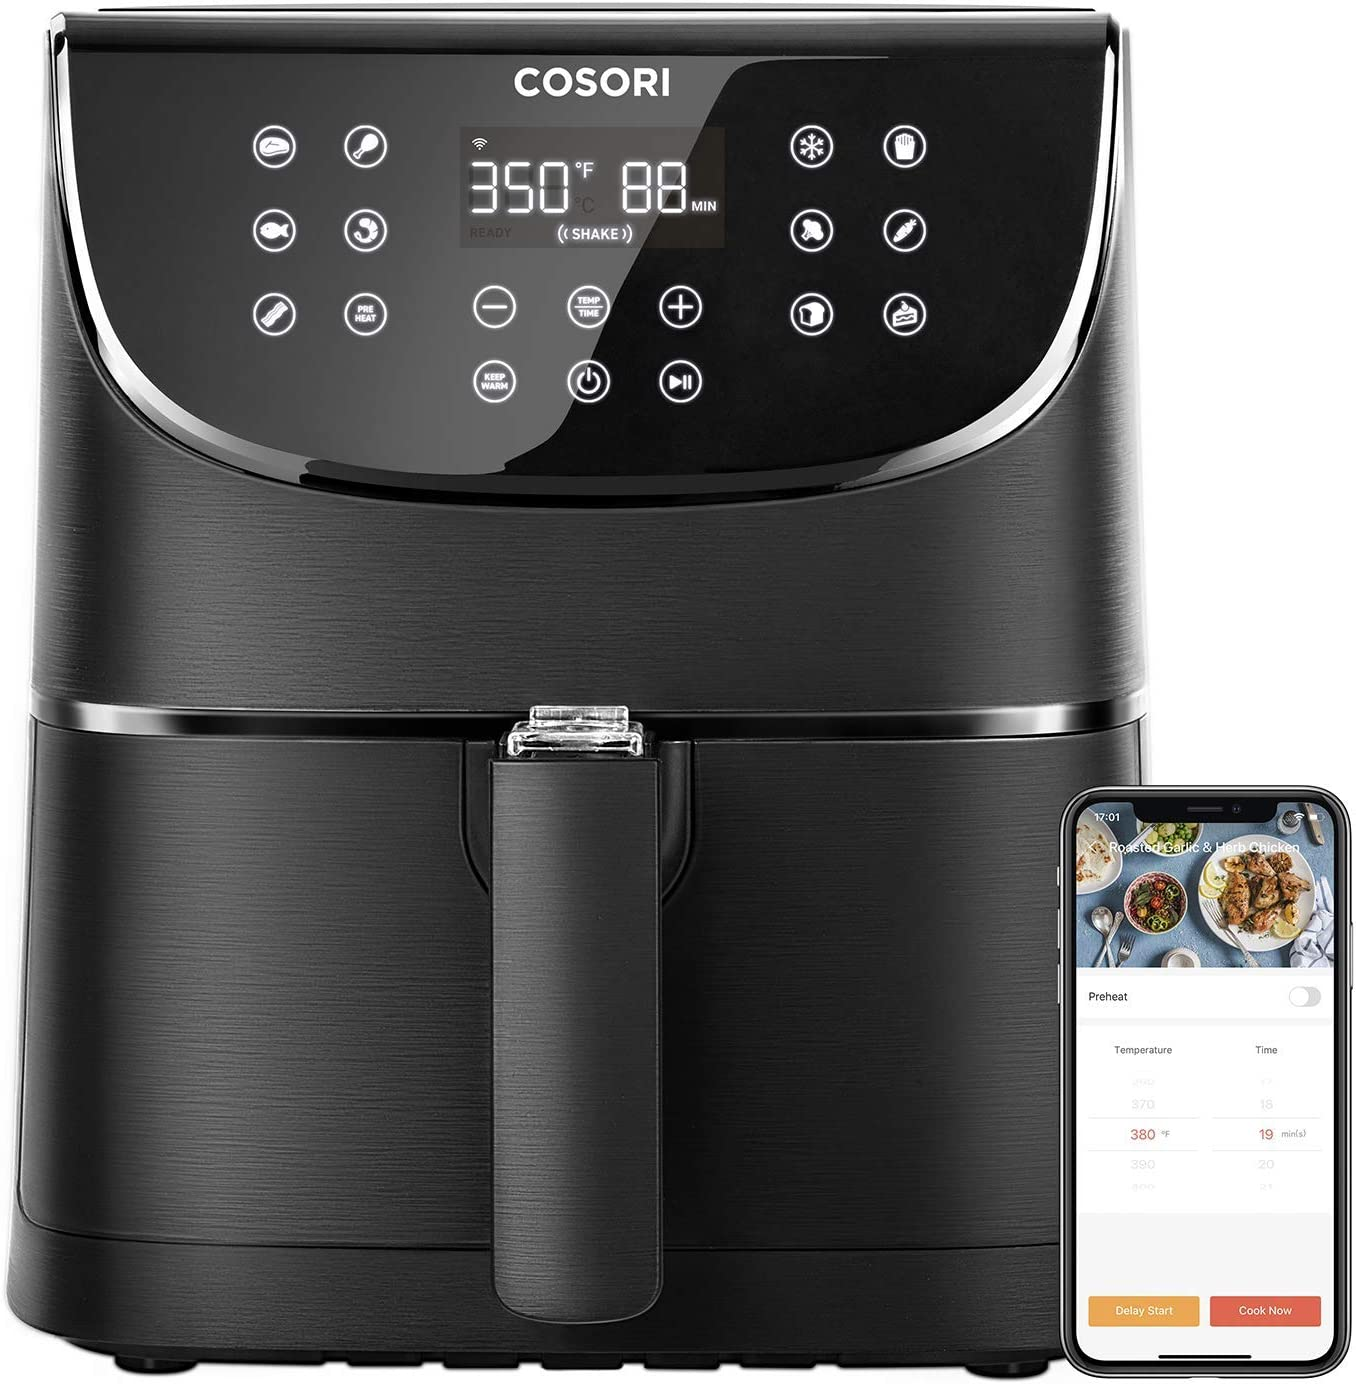 Cosori Smart WiFi Air Fryer 5.8QT(100 Recipes), 1700 Watt Programmable Base for Air Frying, Roasting and Keep Warm 11 Cooking Preset, Digital Touchscreen, 2 Year Warranty (Renewed)